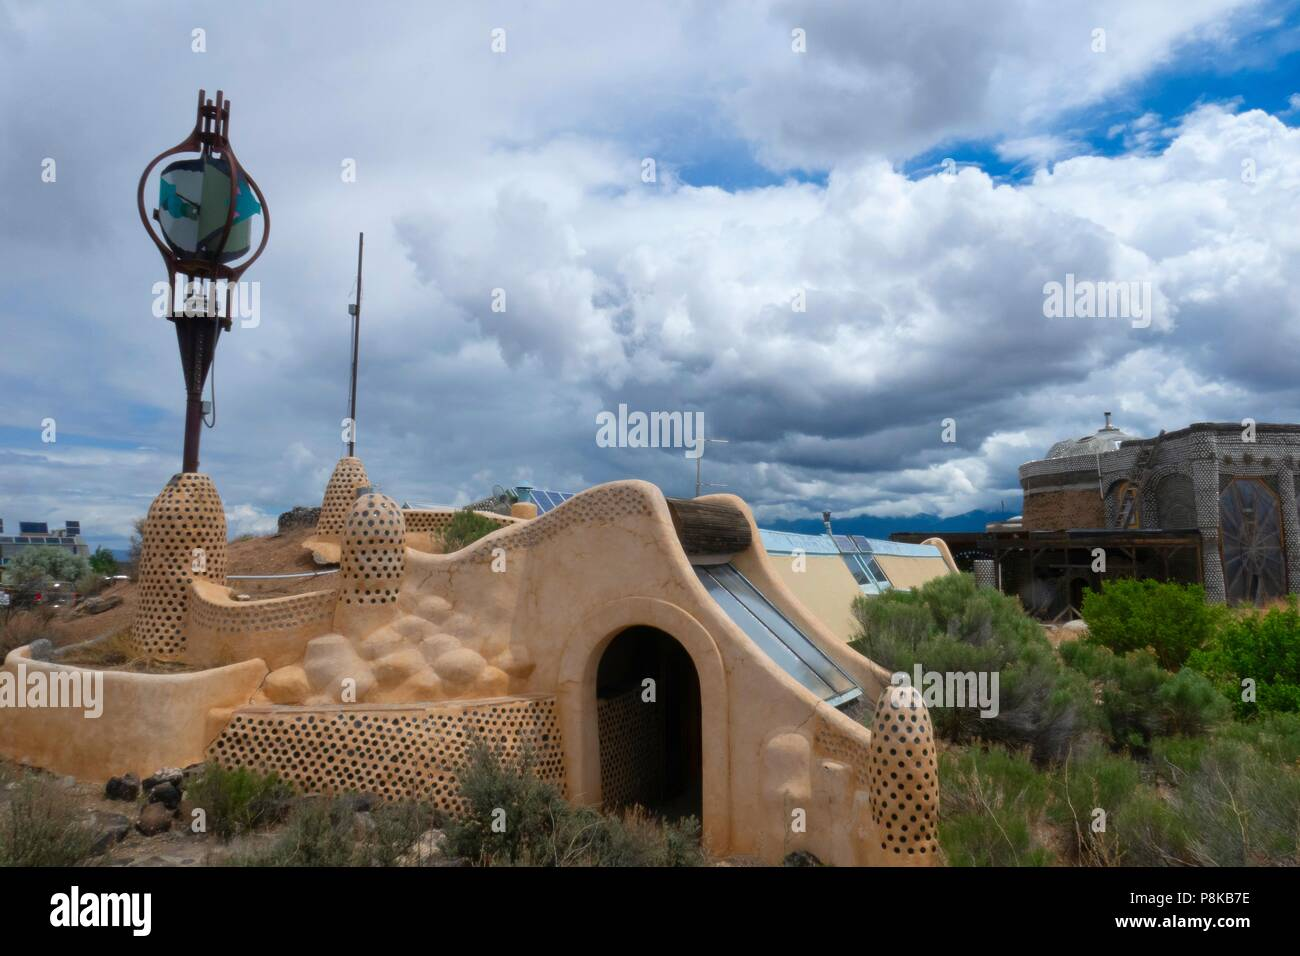 Organic sustainable housing in an earthship community on the outskirts of Taos New Mexico using recycled and sustainable building materials - Stock Image